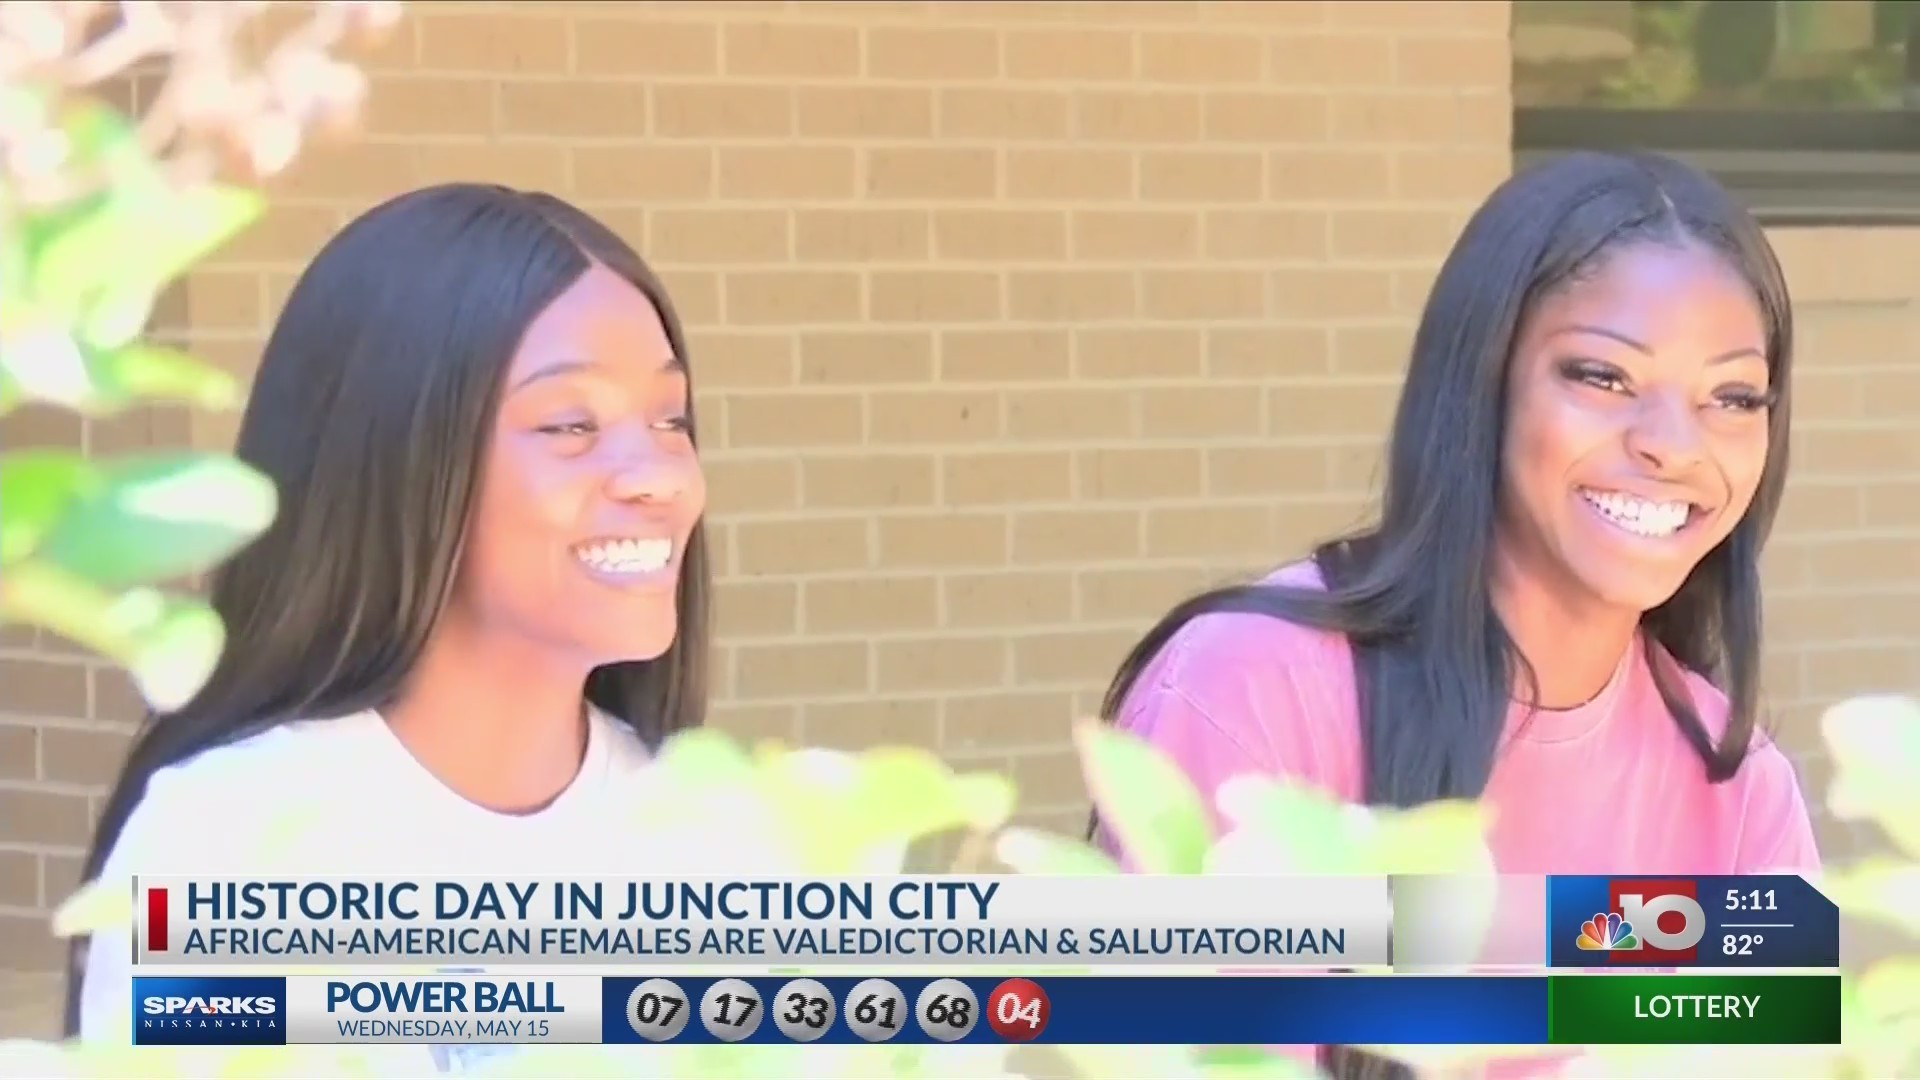 For the first time in the Junction School District history, there are two African American women to rank at the top of their class.